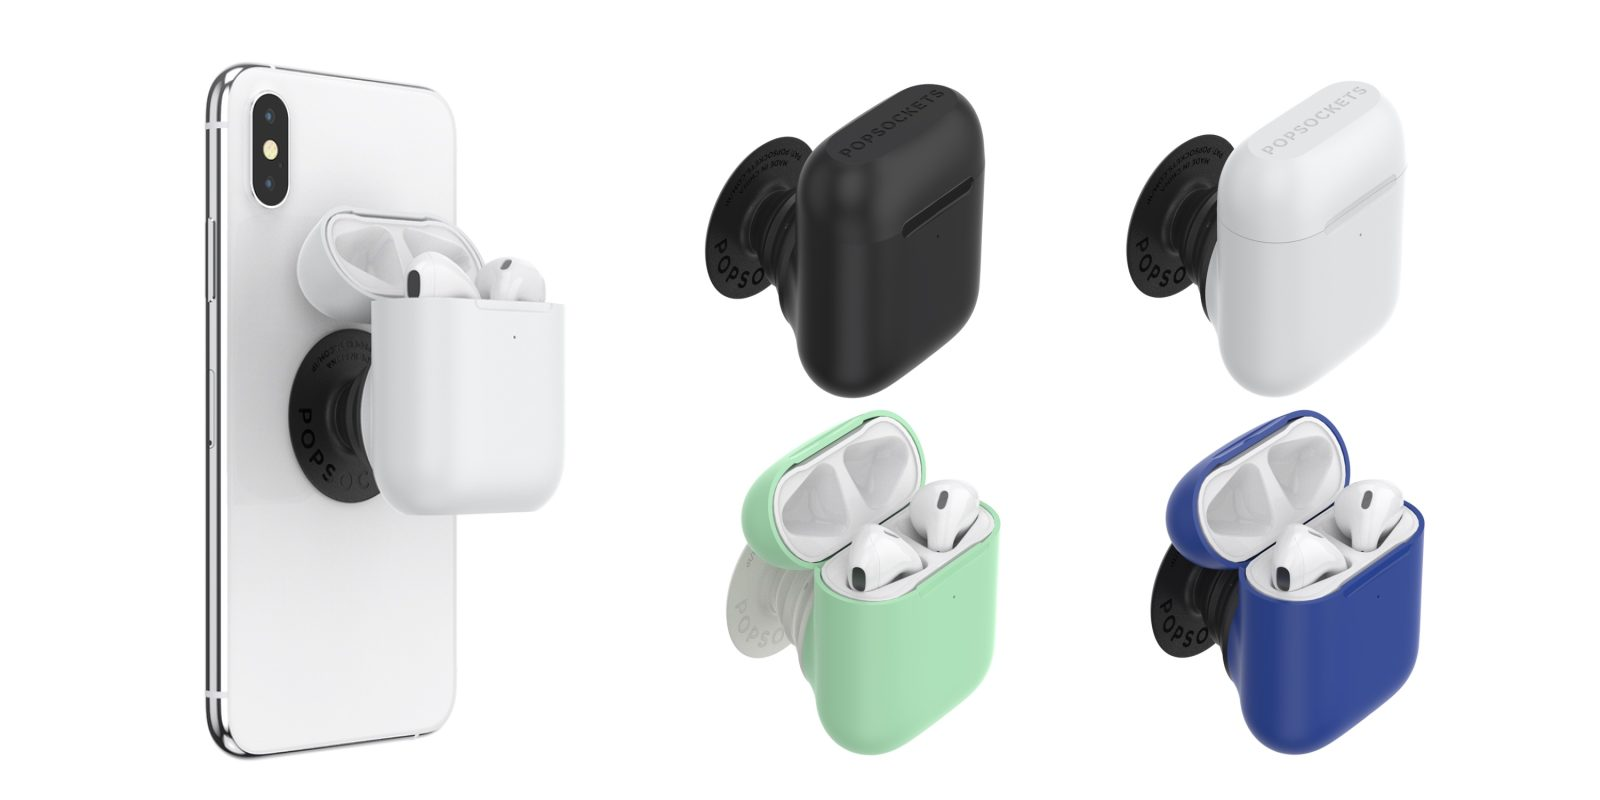 PopSockets' PopGrip AirPods Holder is a detachable iPhone grip/stand and AirPods case